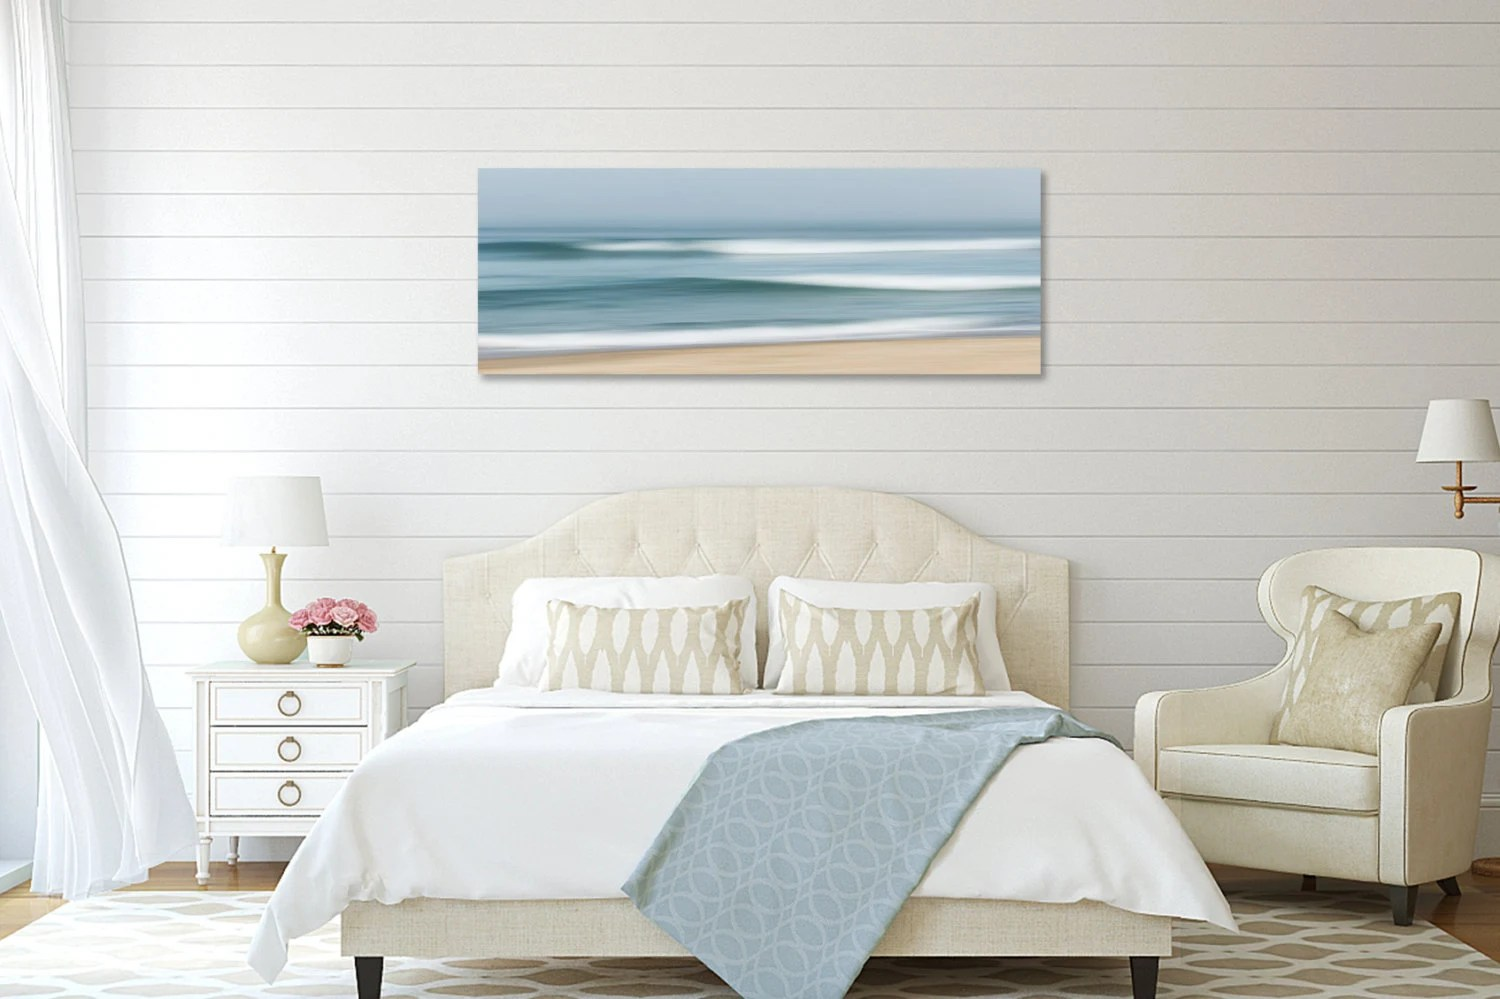 title | Large Coastal Wall Decor